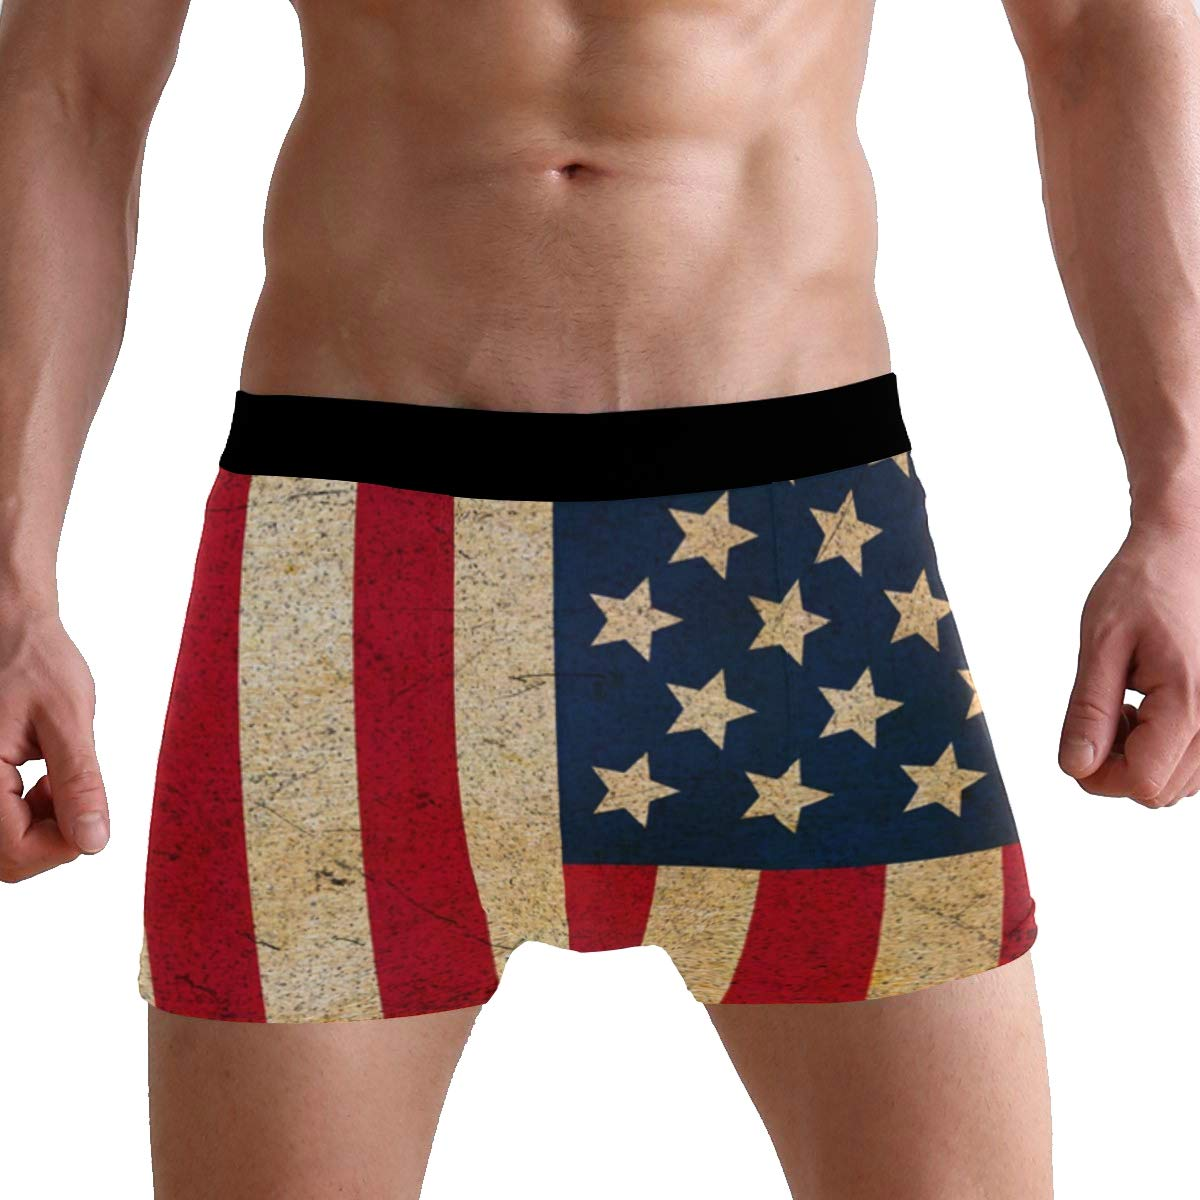 Vintage American Flag Boxer Briefs Mens Underpants Underwear Boxer Shorts for Mens and Boys